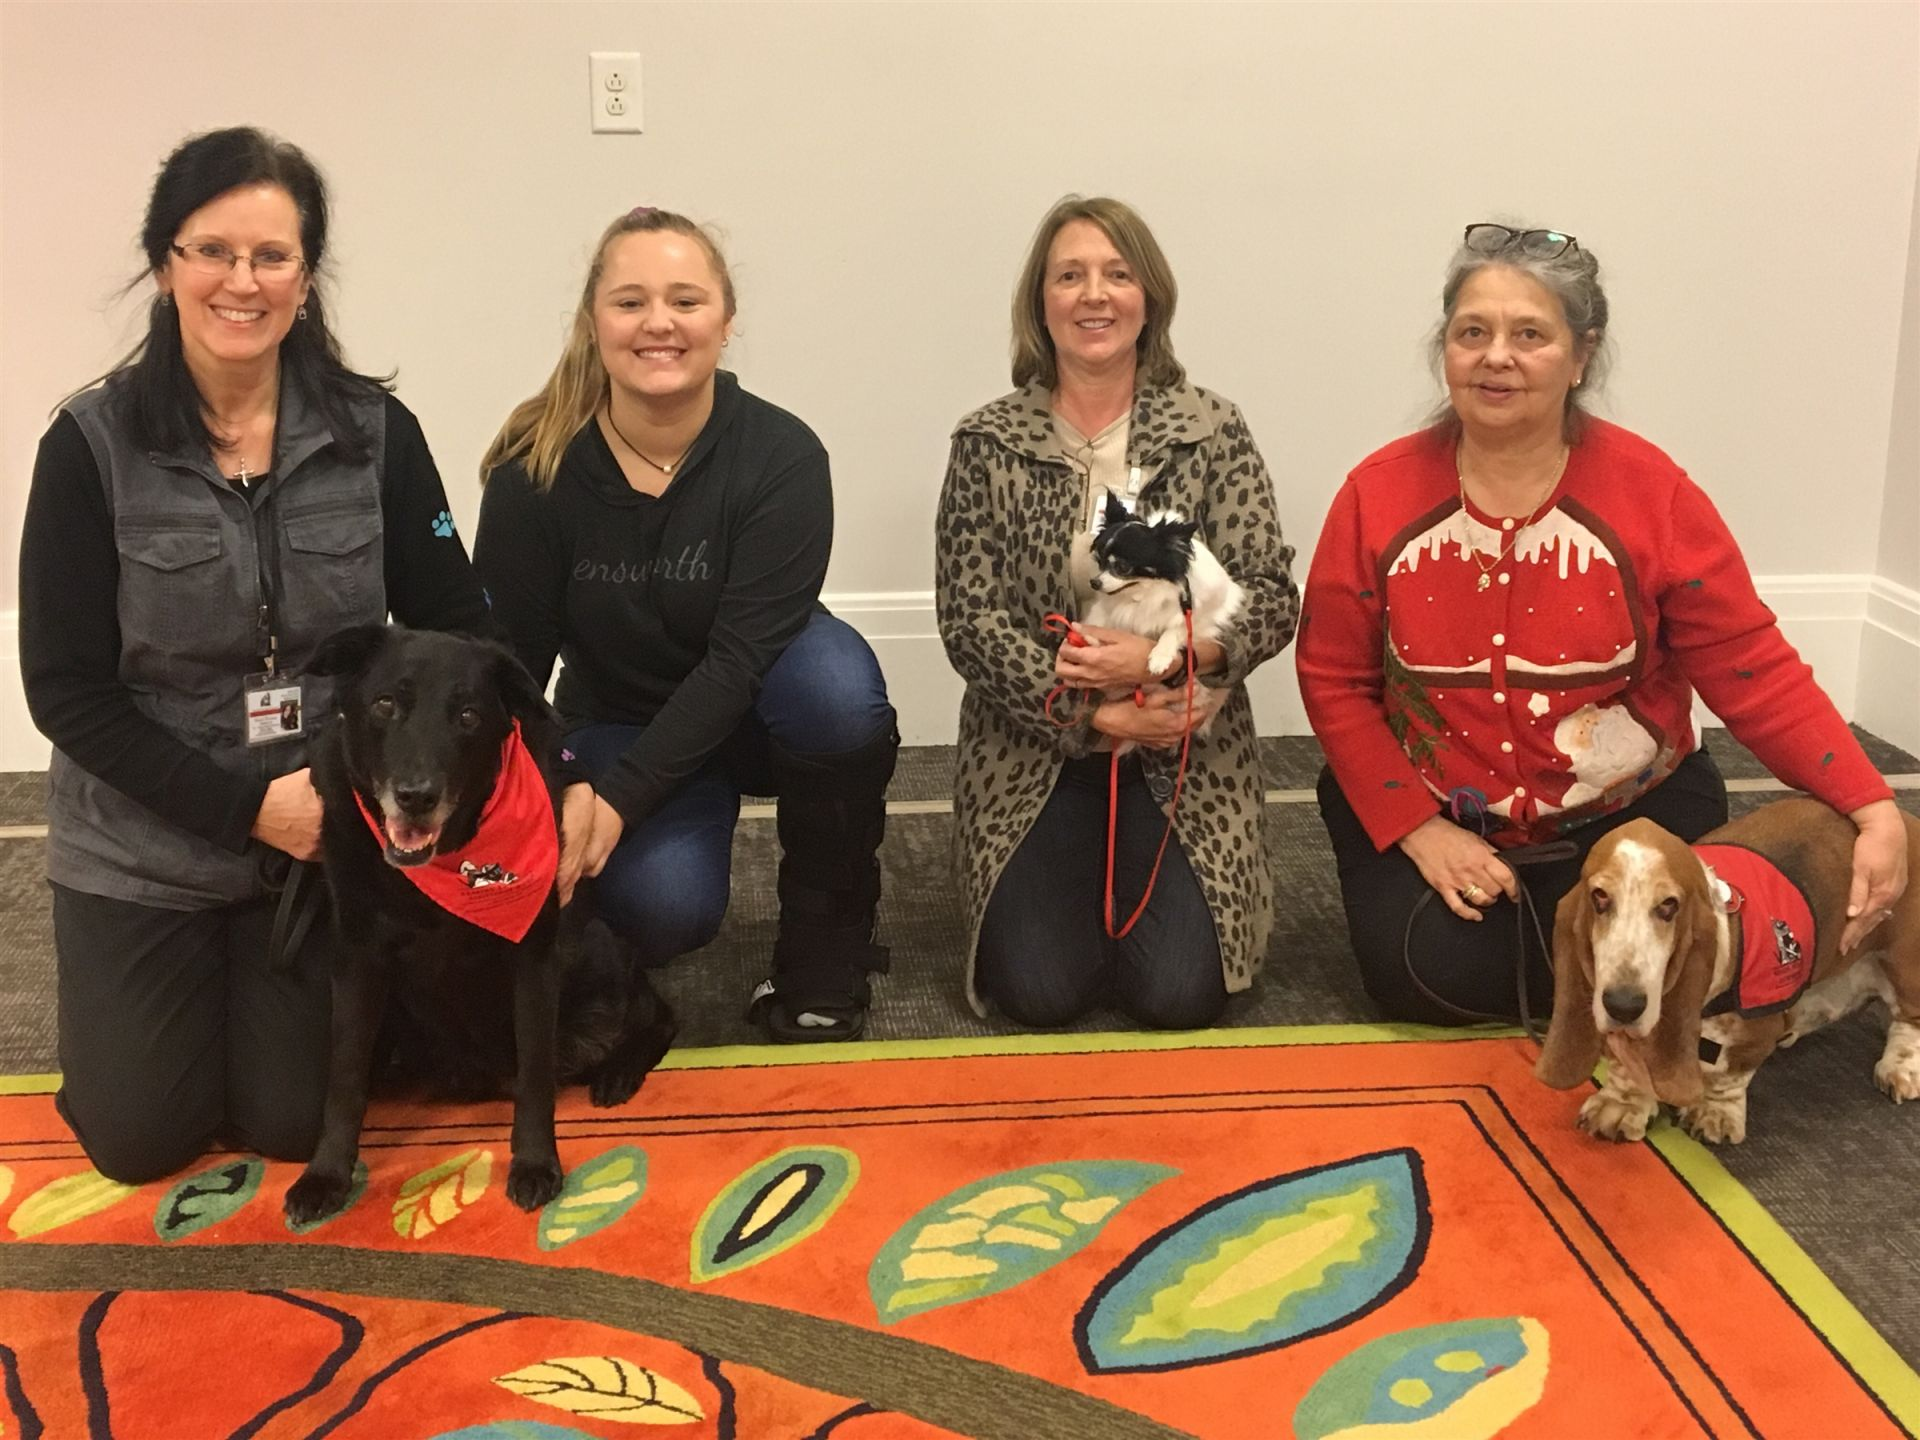 From left to right: Bella the Labrador mix and Debbie Wilburn, Rose Civitts, Suzanne Jones and Reuben the long-haired Chihuahua, and Debbie Martin and Brother the Basset Hound.